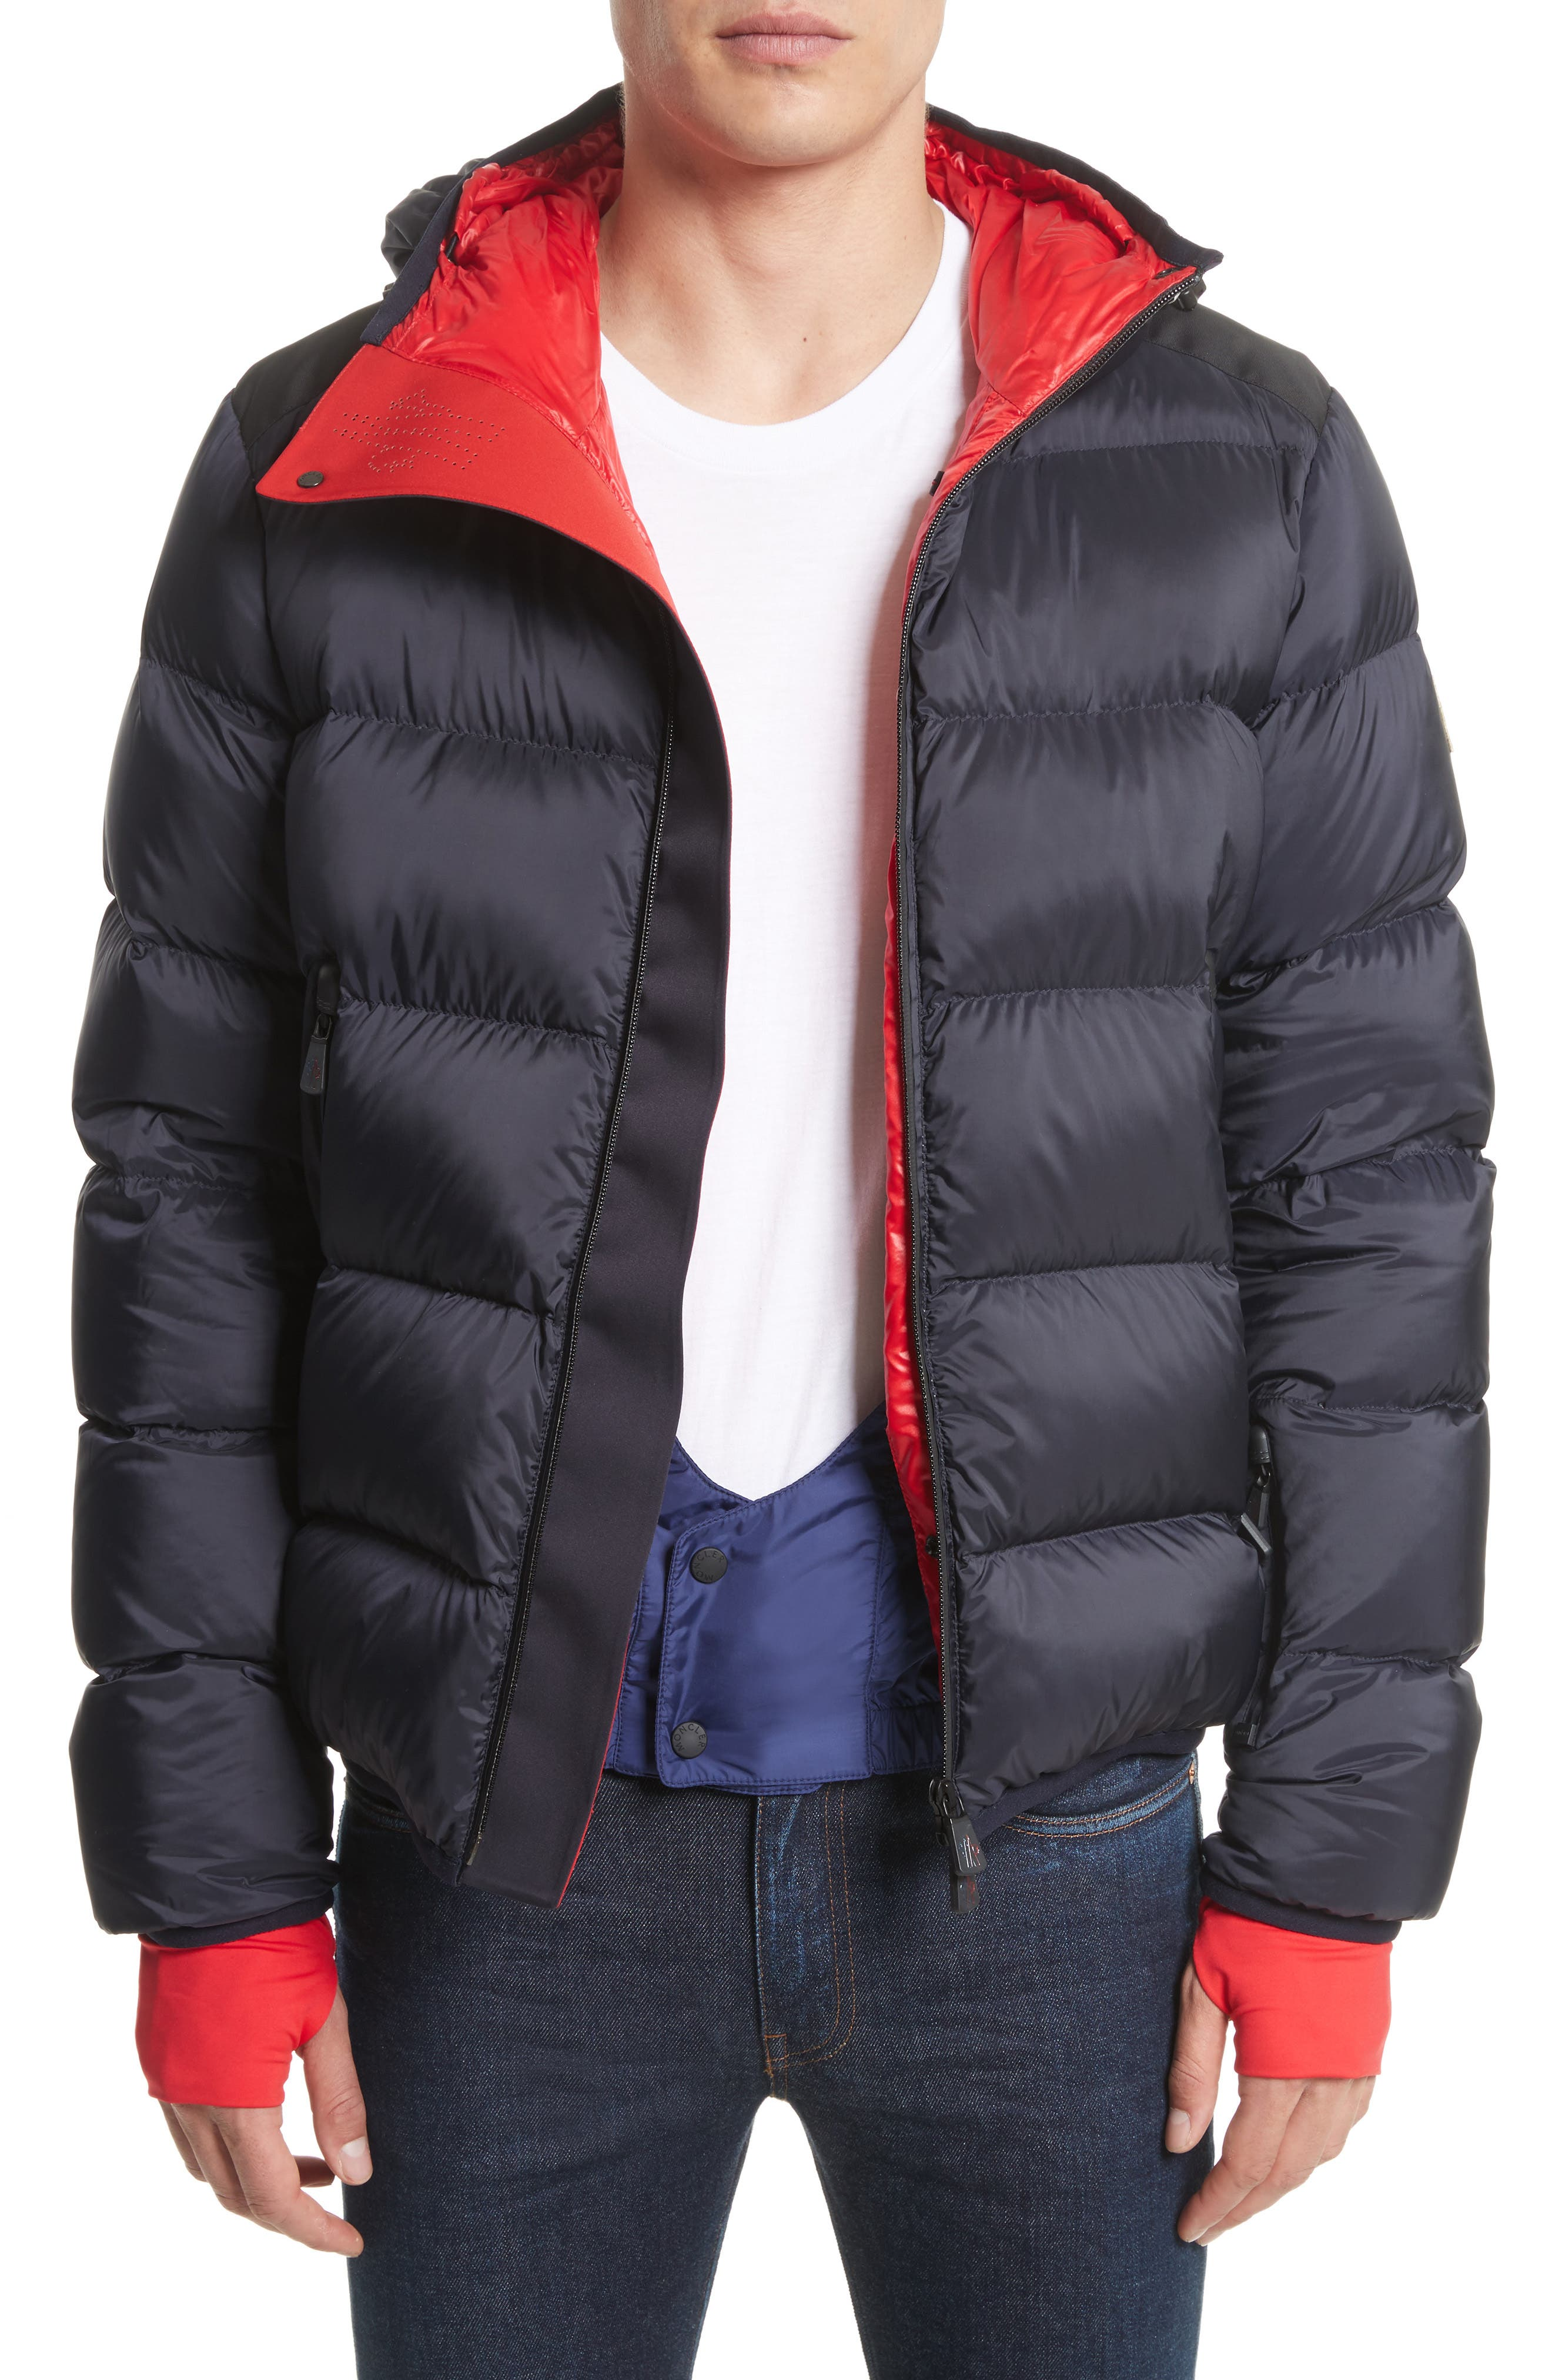 Grenoble Hintertux Hooded Down Jacket,                             Alternate thumbnail 4, color,                             Navy/ Red